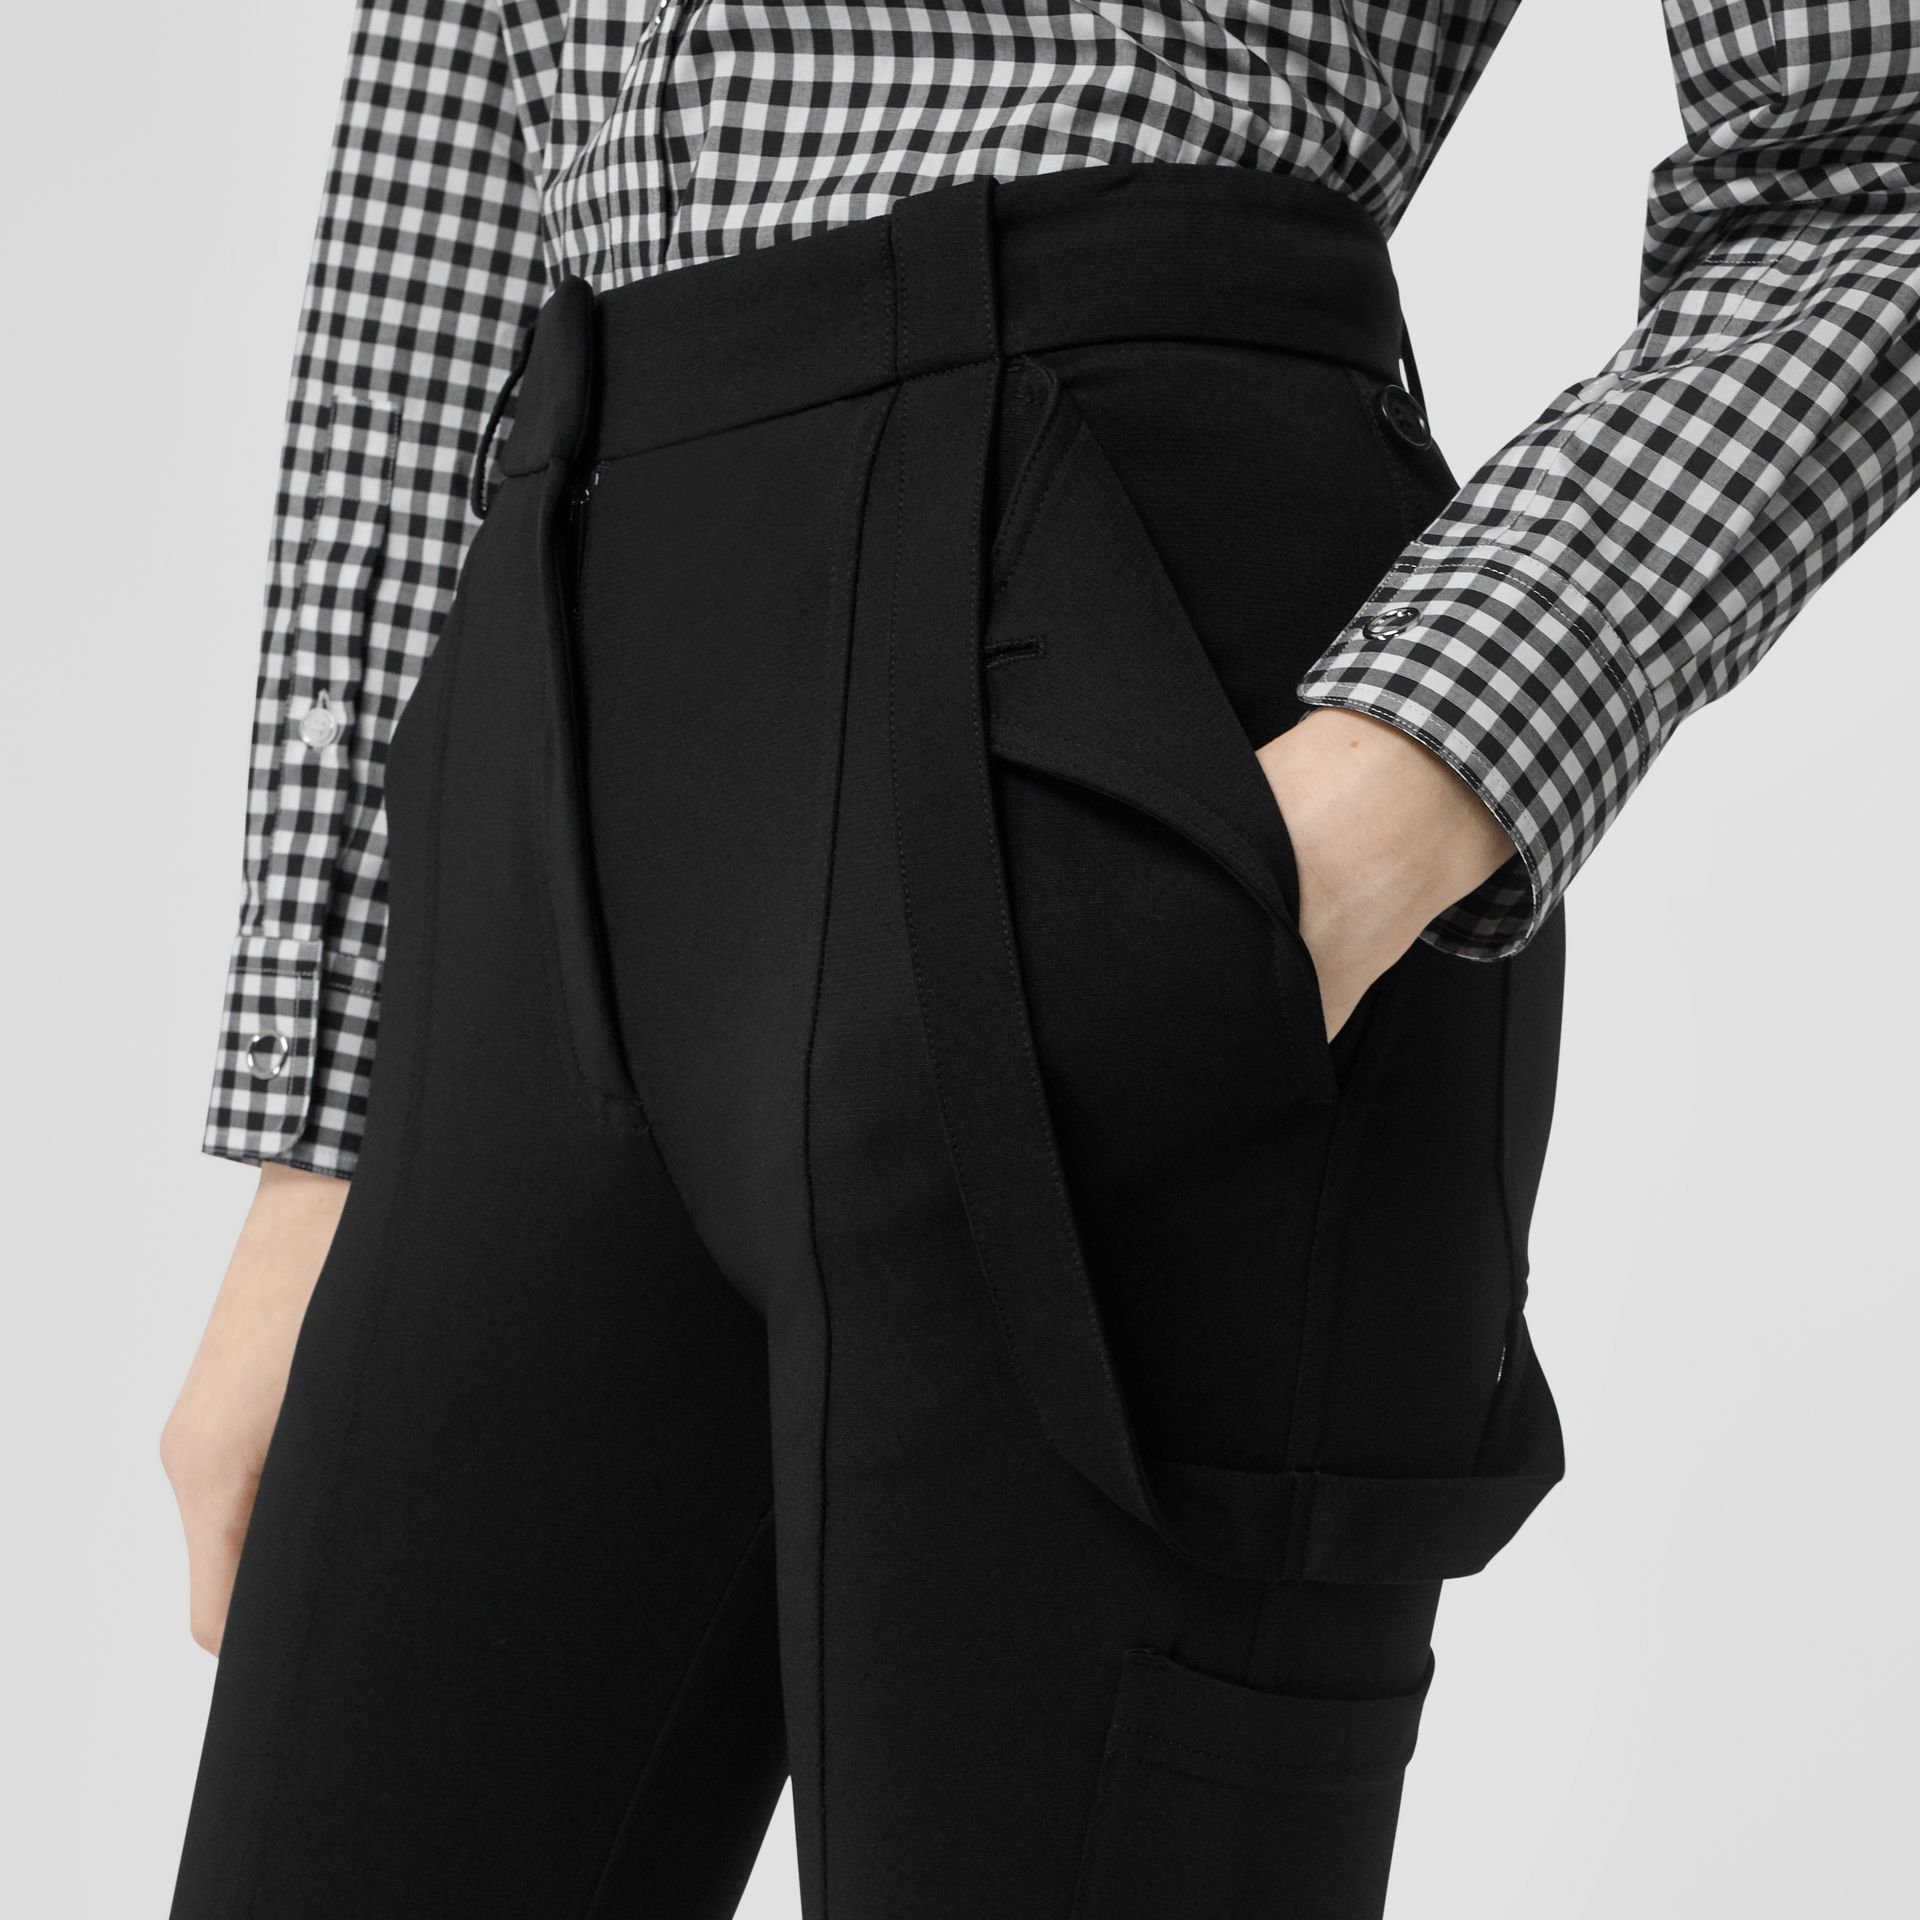 Strap Detail Stretch Crepe Jersey Trousers in Black - Women | Burberry - gallery image 1